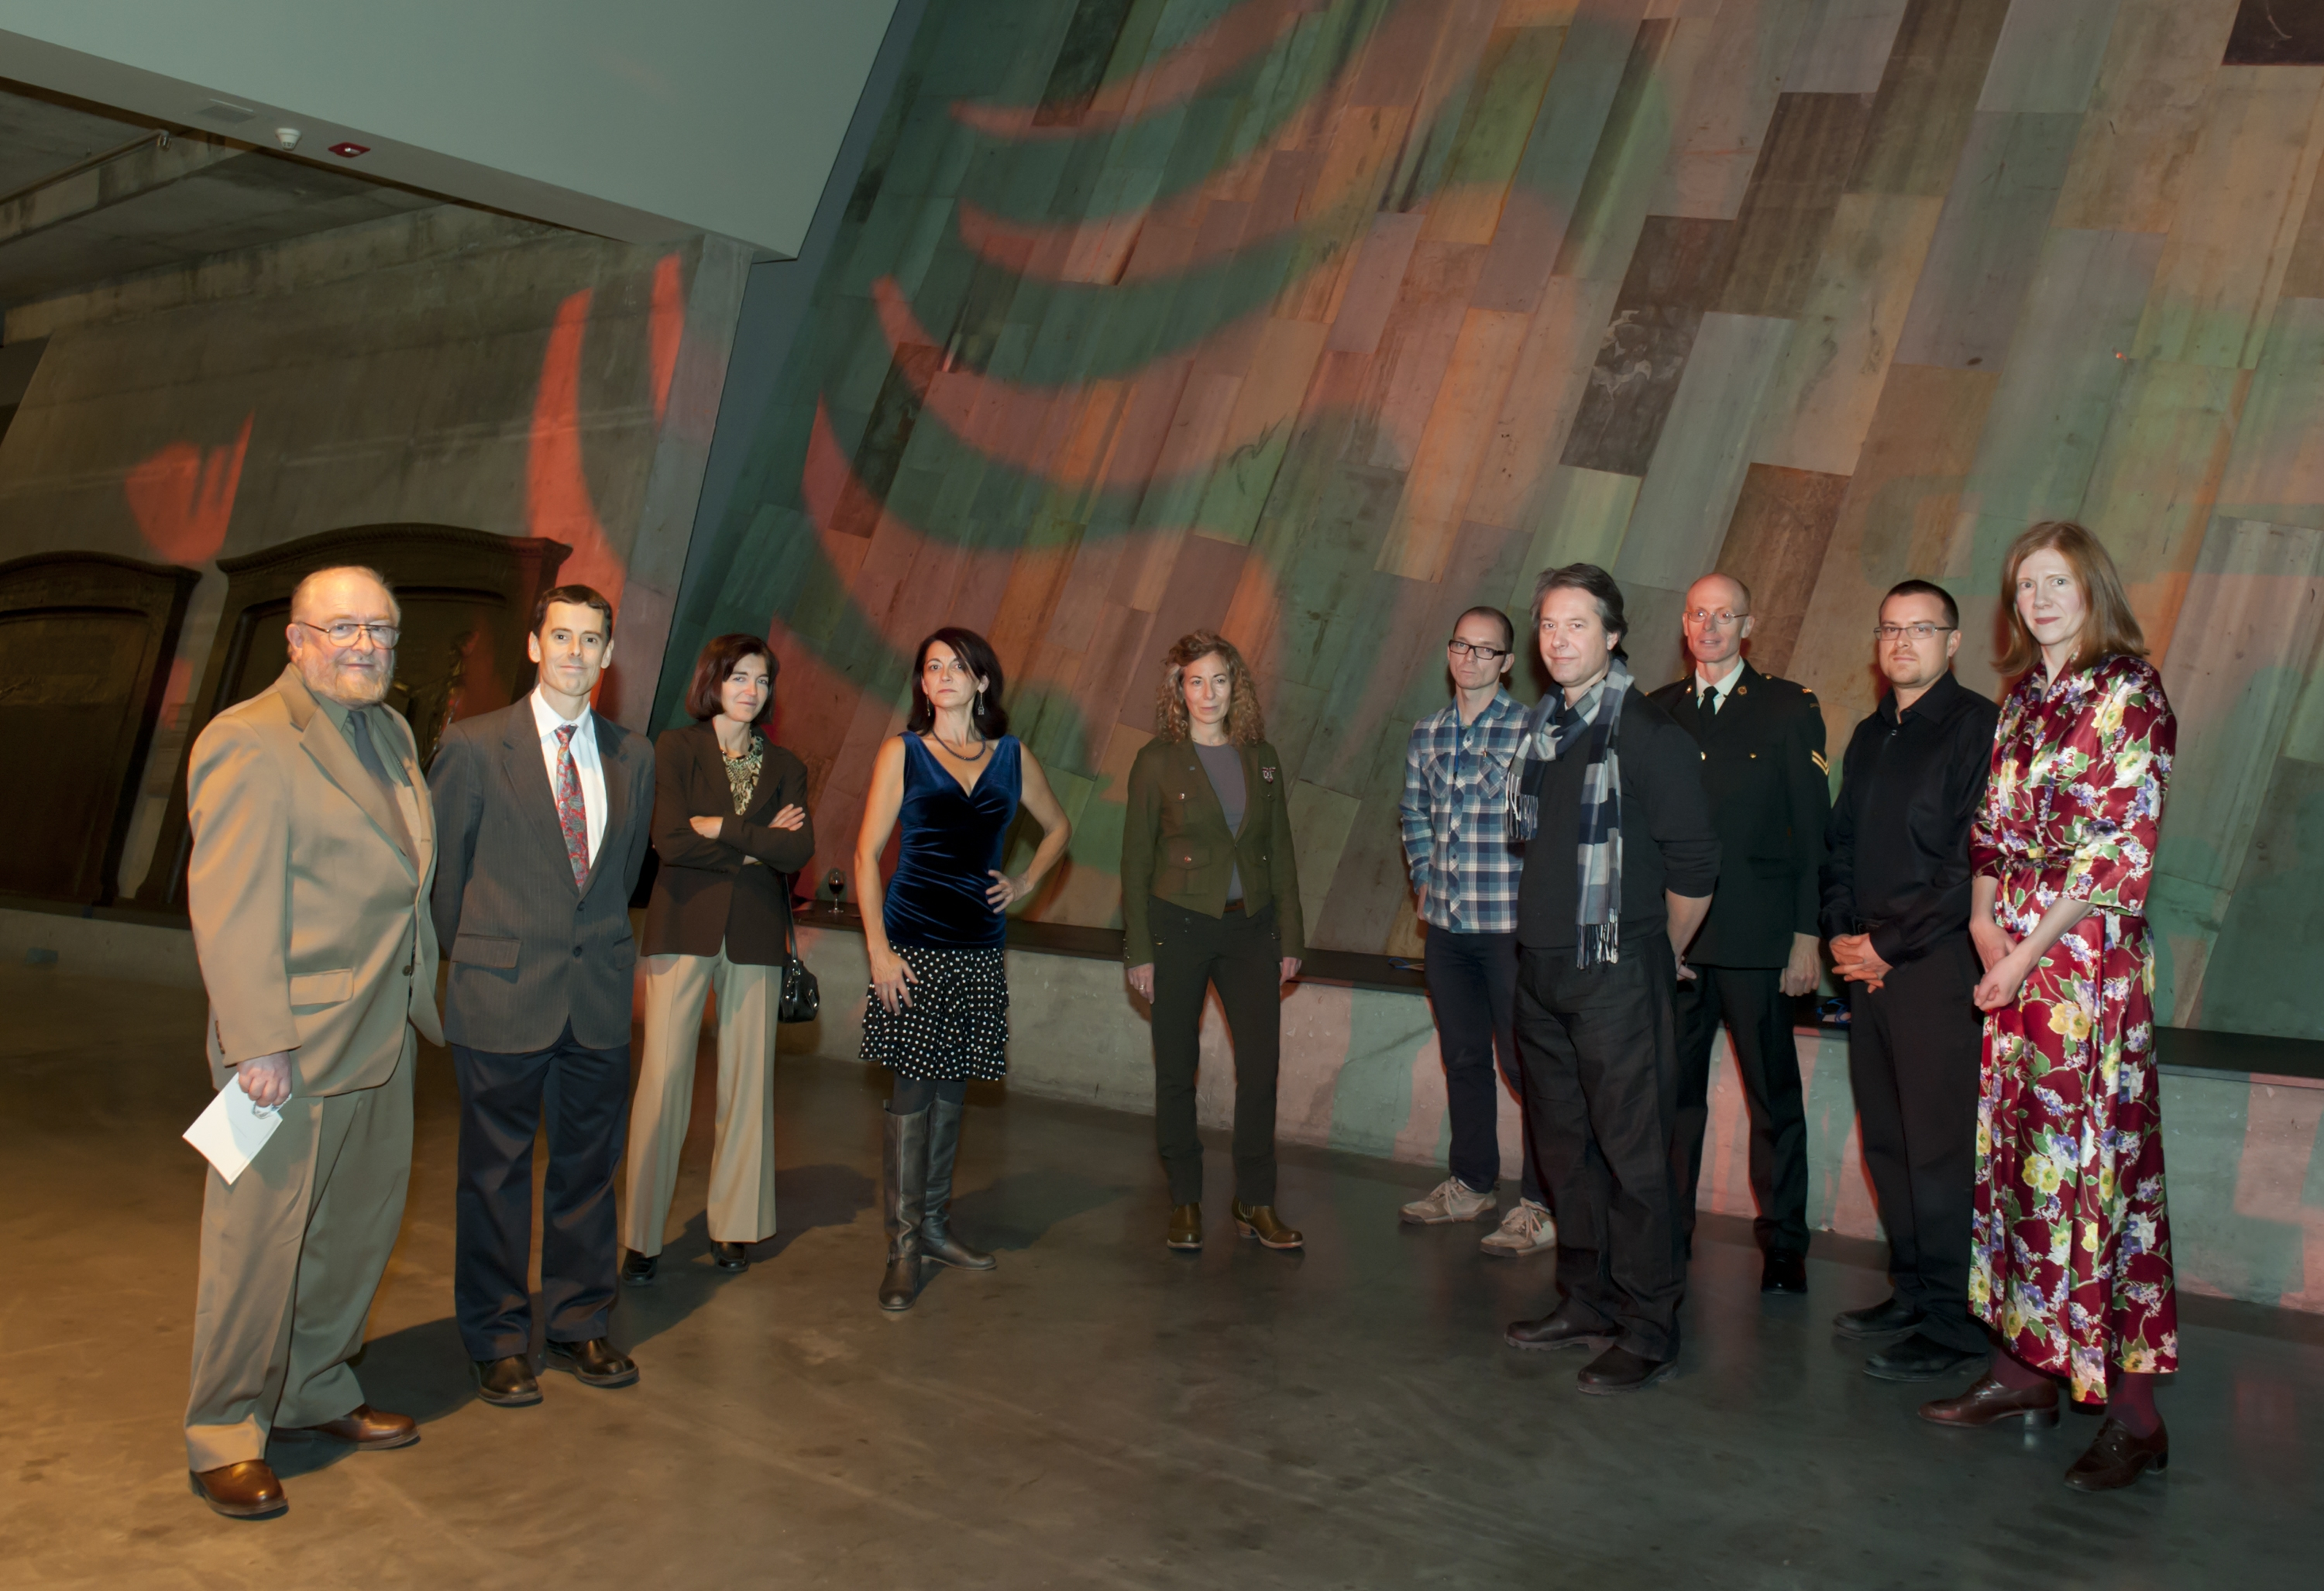 At the Artists at Brush with War exhibit at the Canadian War Museum on December 9, 2010. From left to right, Bill MacDonell, John McFarlane, Karole Marois, Suzanne Steele, Gertrude Kearns, Scott Waters, Alex Meyboom, David Collier, Andrew Wright and Karen Bailey. Photo supplied by: John McFarlane